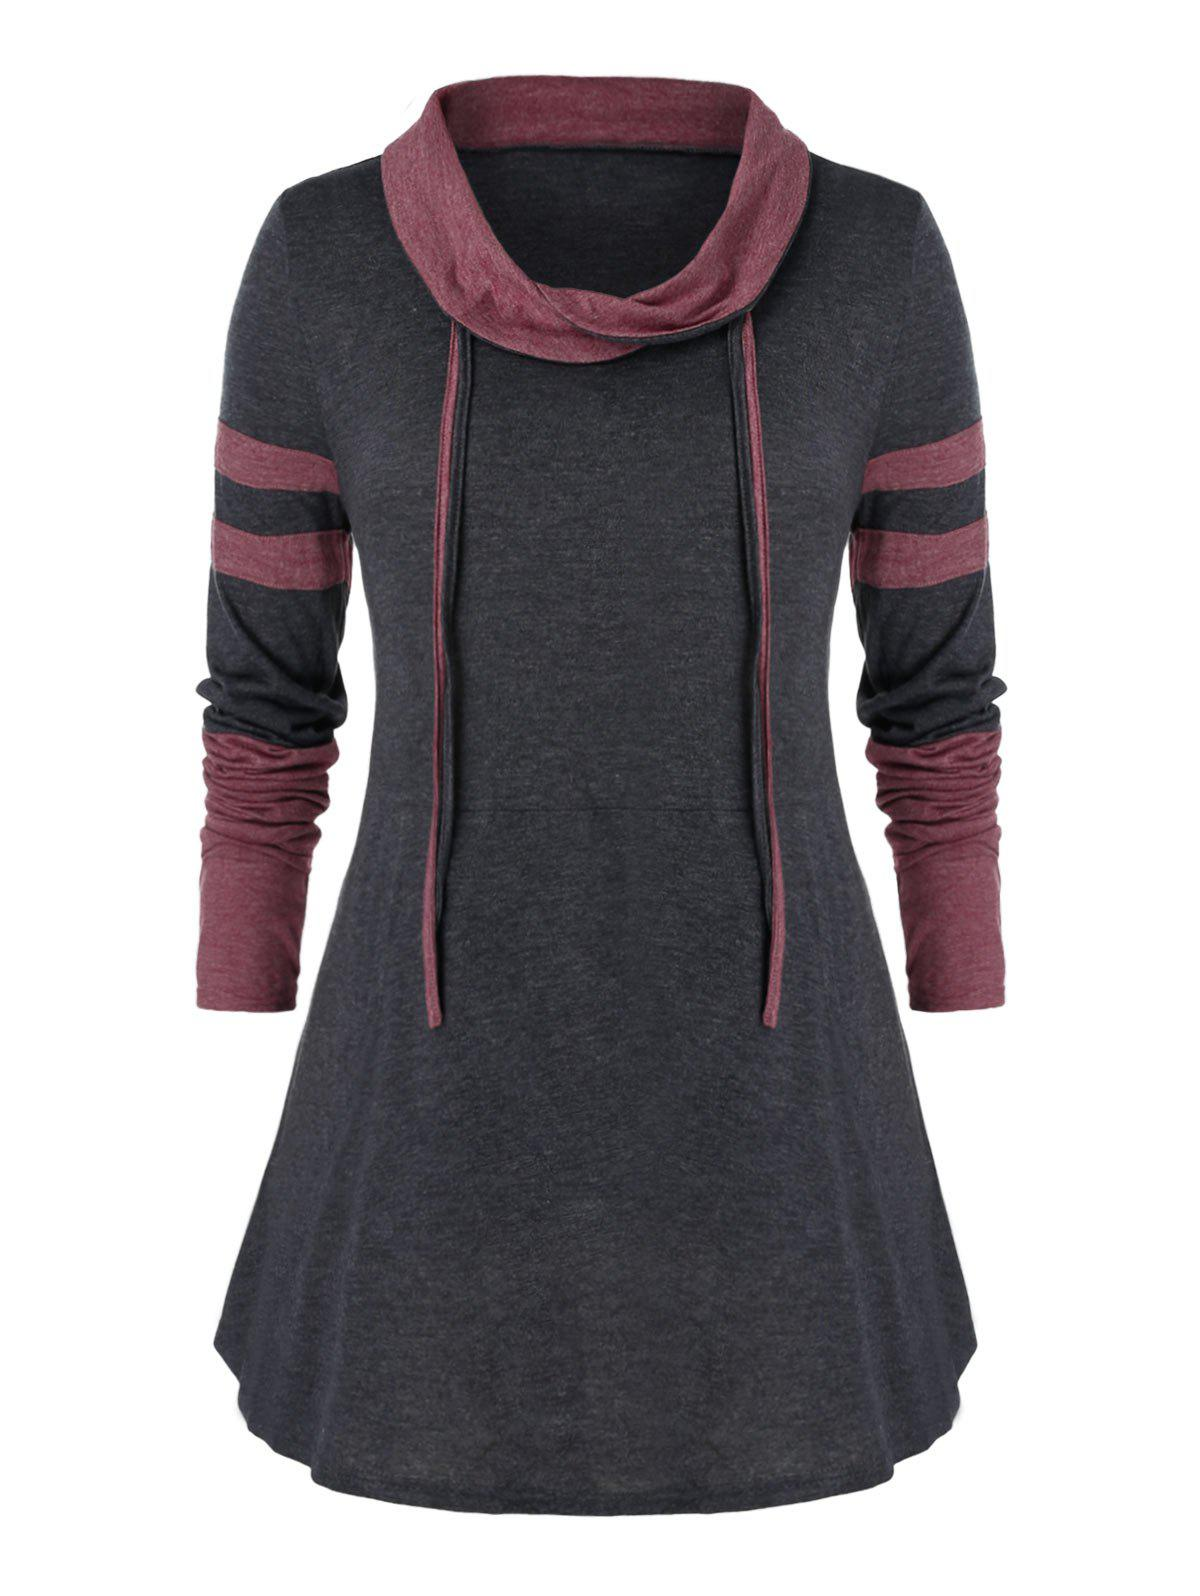 Plus Size Contrast Turn-down Collar Tunic T Shirt - CARBON GRAY 5X